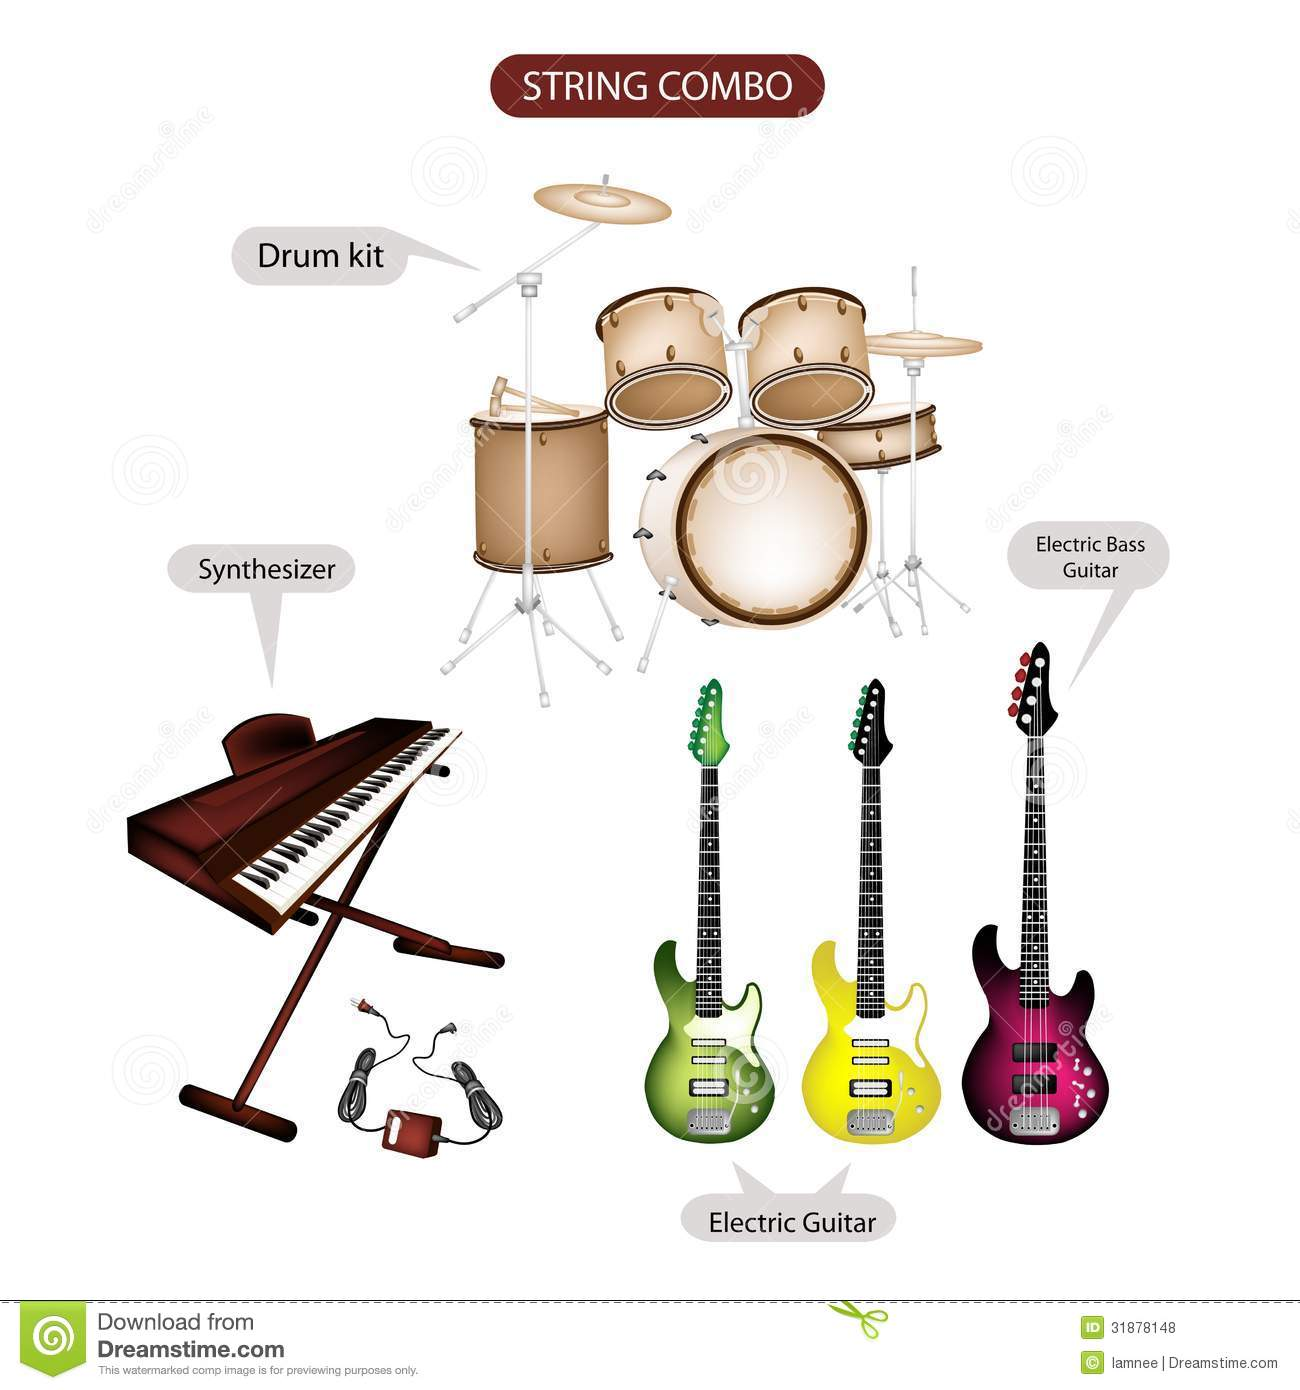 a set of string combo music equipment stock photo image of bass keyboard 31878148. Black Bedroom Furniture Sets. Home Design Ideas